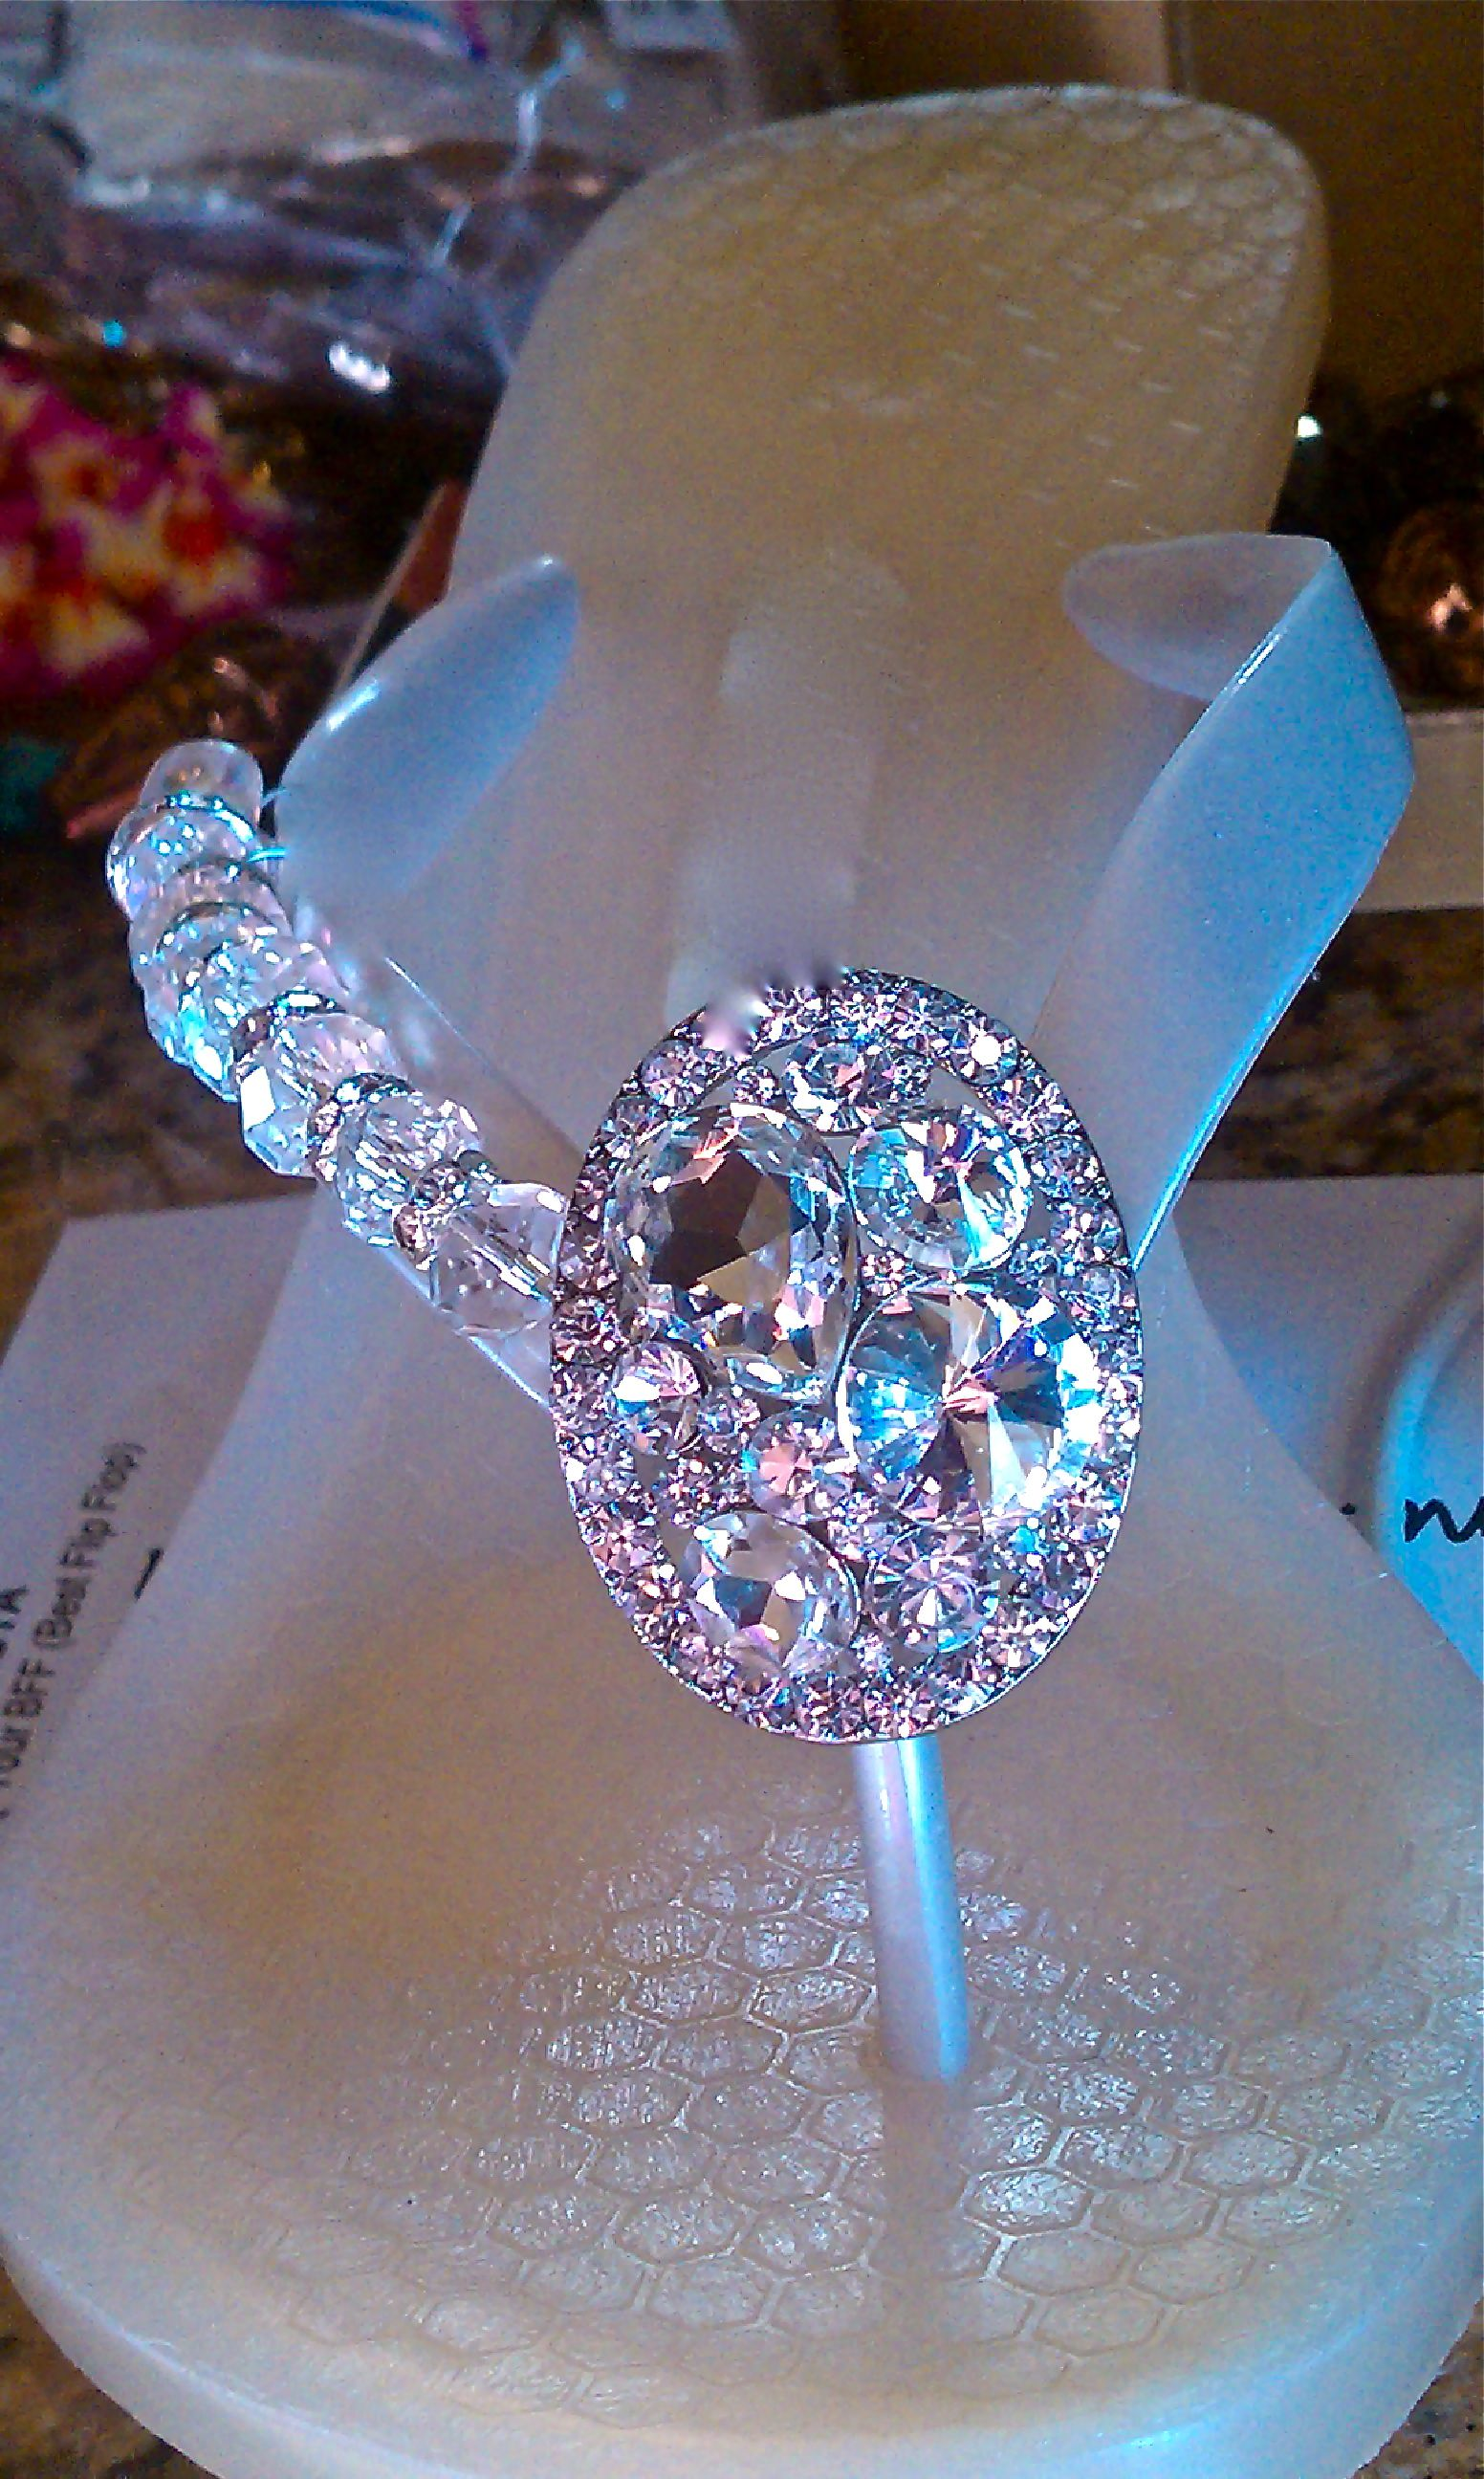 HARRY WINSTON is that YOU?  By Flipinista, your BFF  REGISTERED TRADEMARK <3